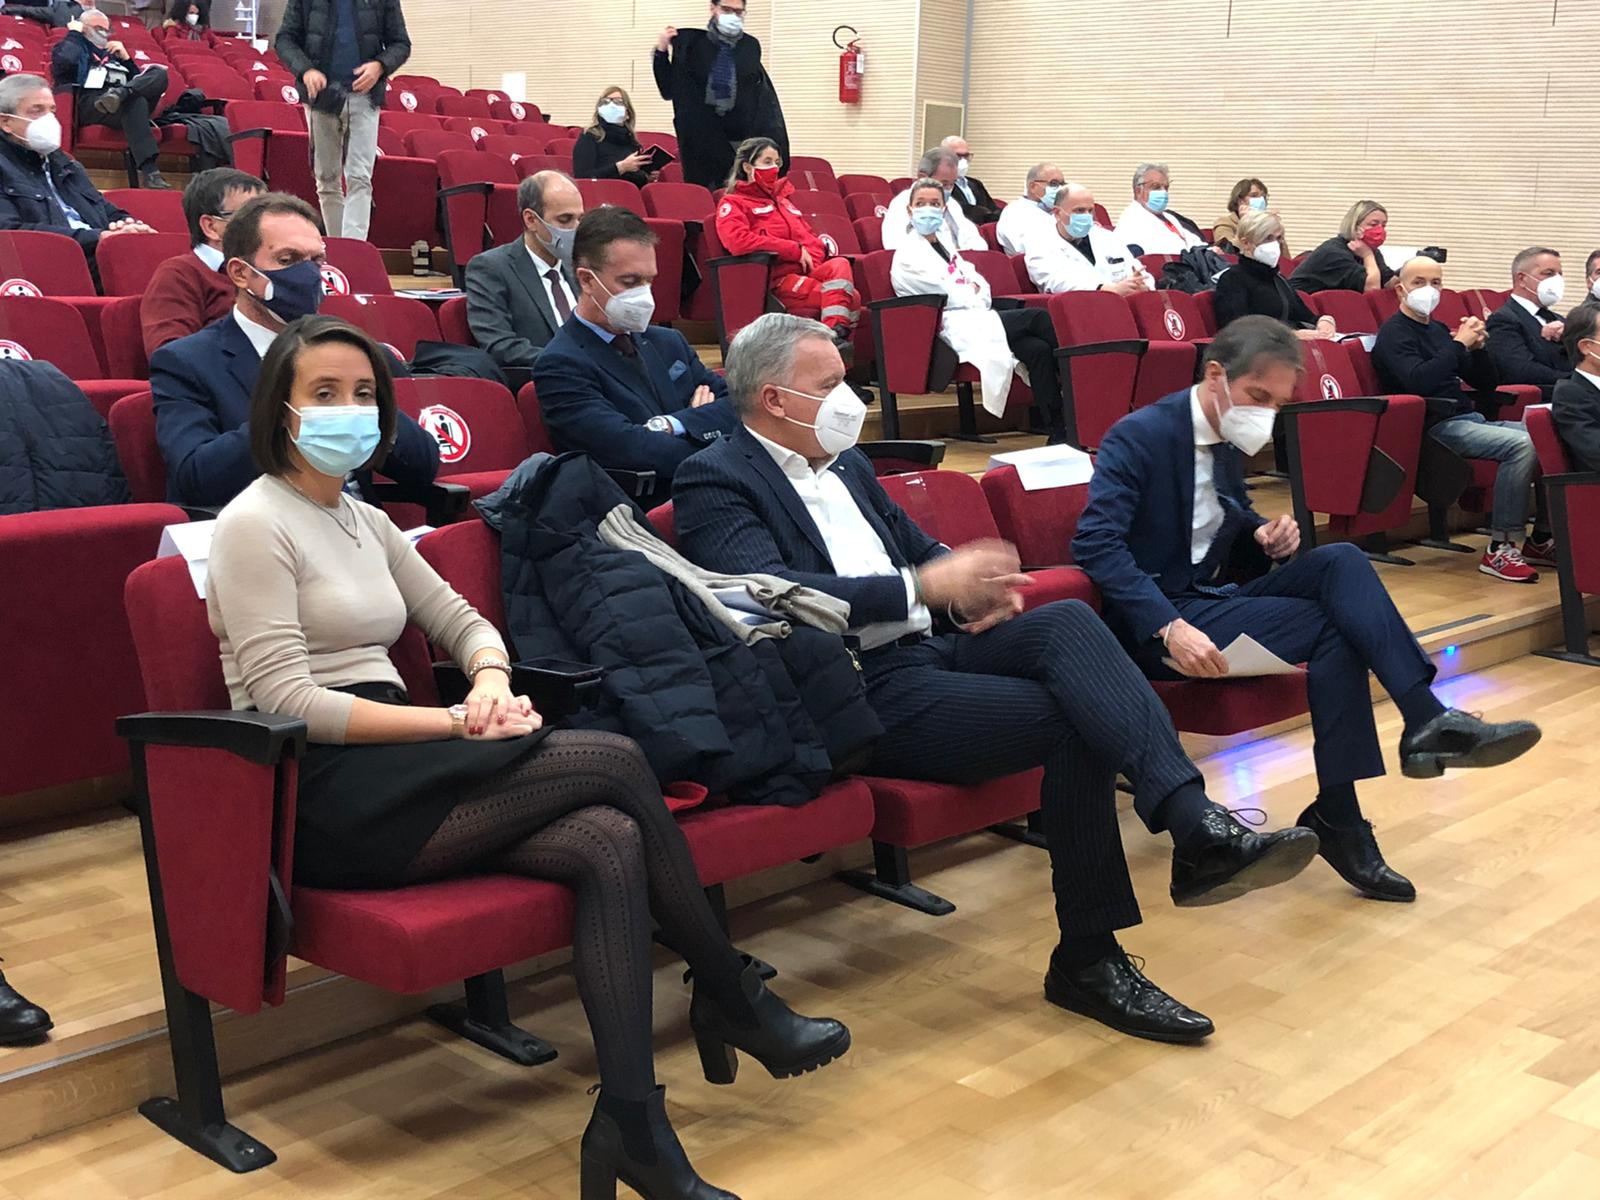 vaccination day Monza, l'assessore Cambiaghi